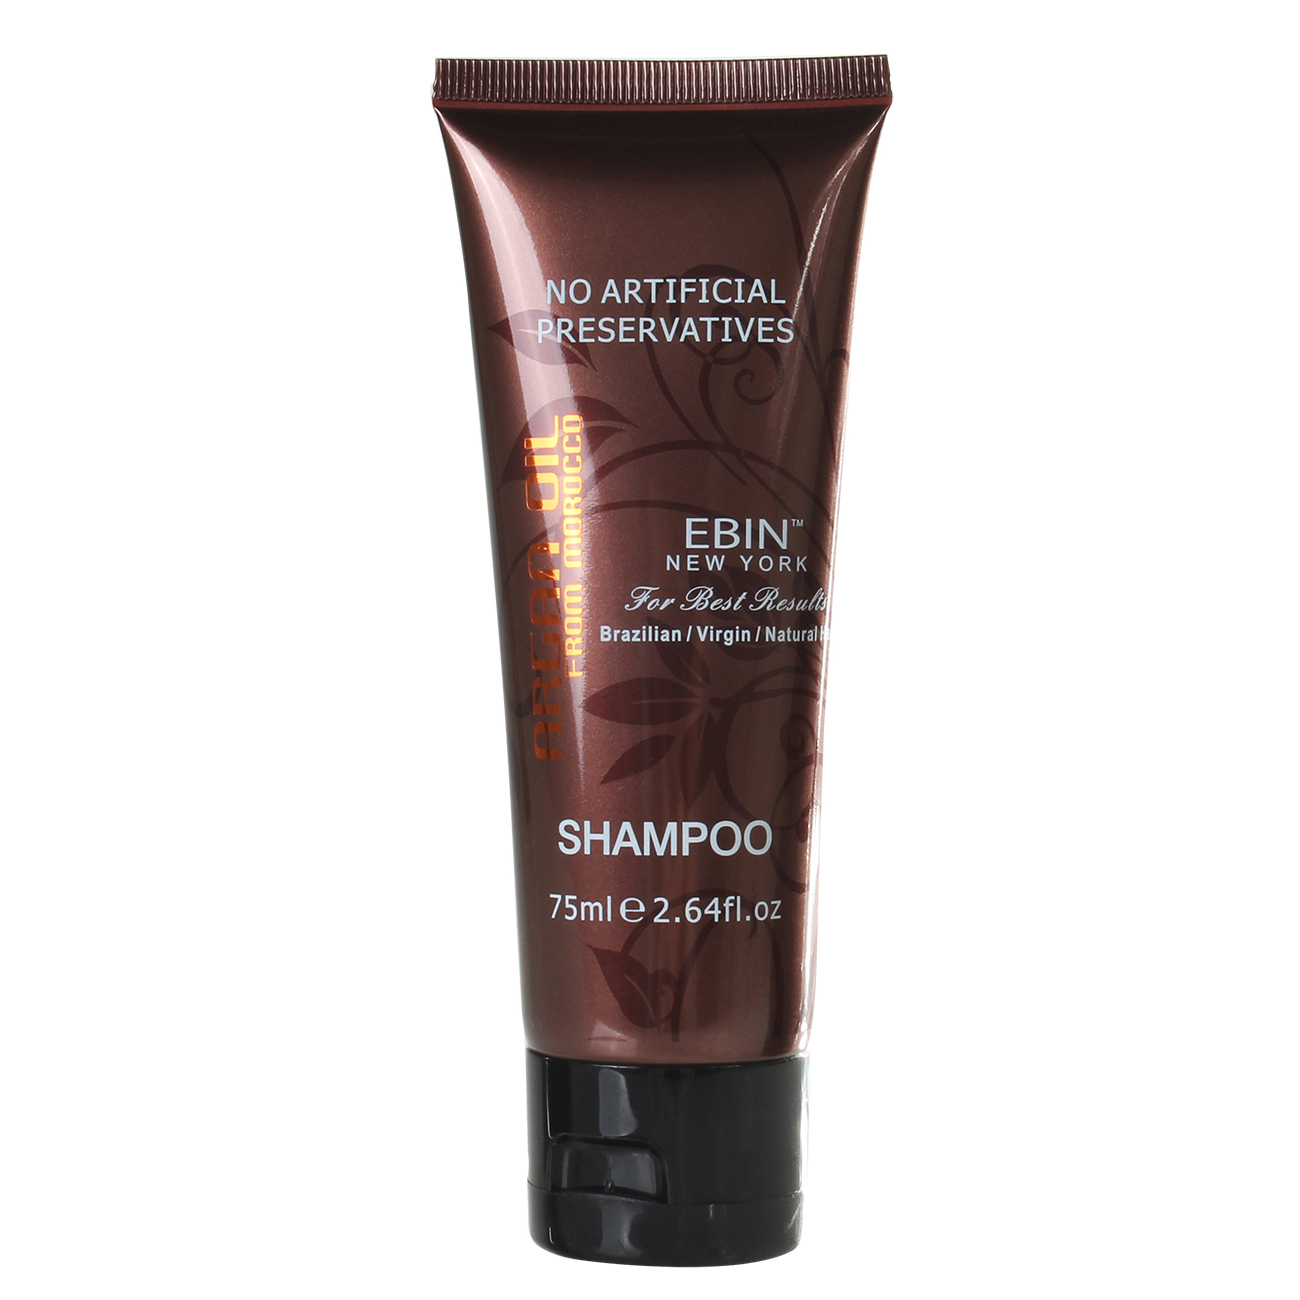 Ebin Argan Oil Shampoo 75ml